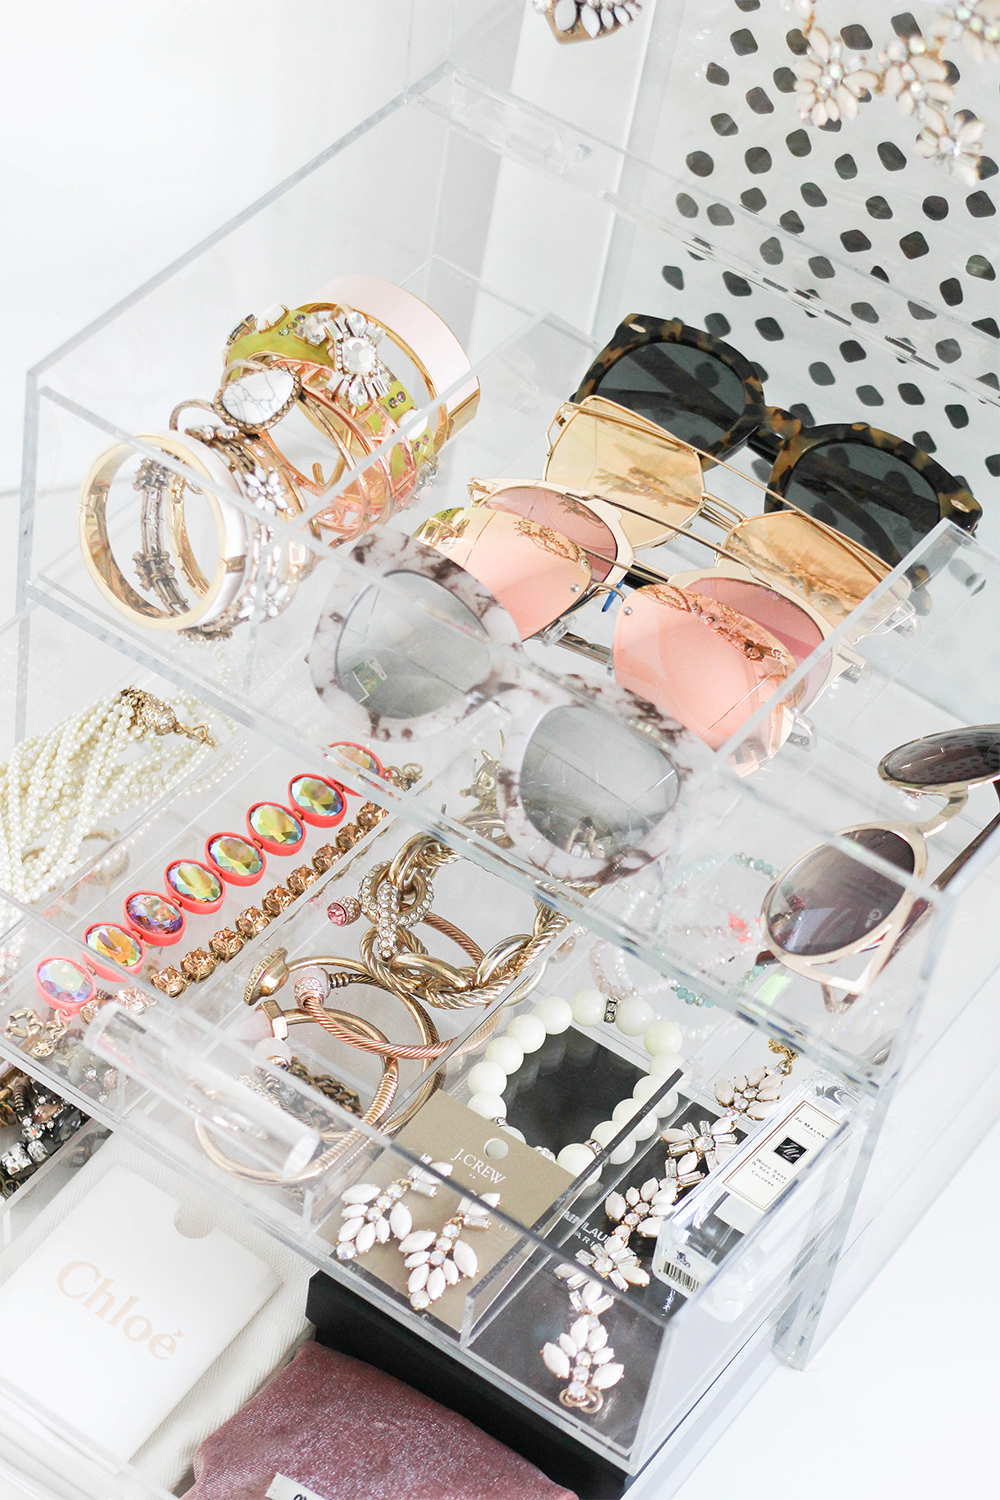 How To Organize Your Jewelry Amp Accessories With Glamboxes Organize Closet Organization